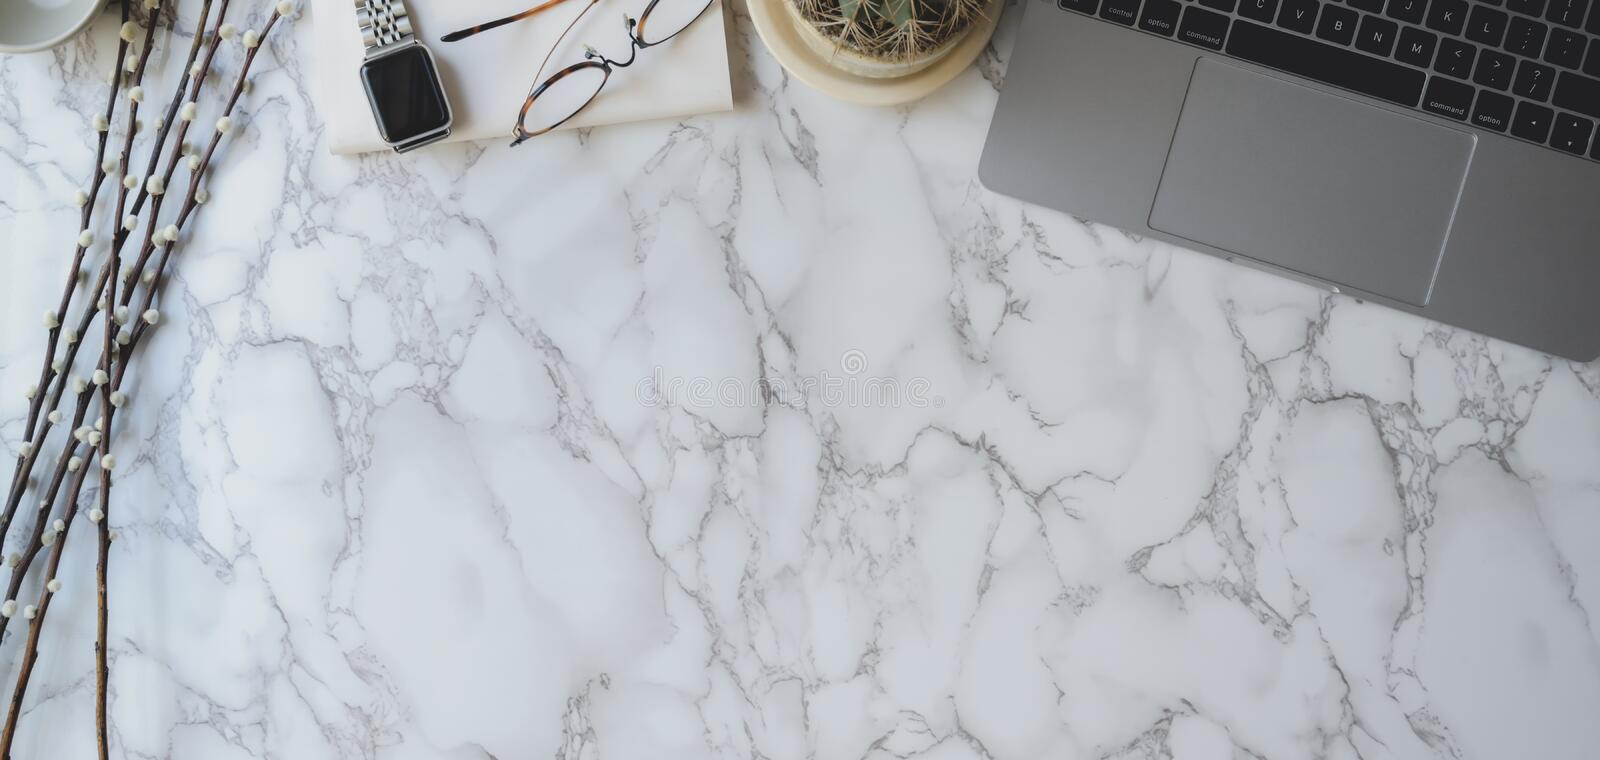 Overhead shot of stylish workspace with laptop computer, smartphone and office supplies on marble desk royalty free stock photos